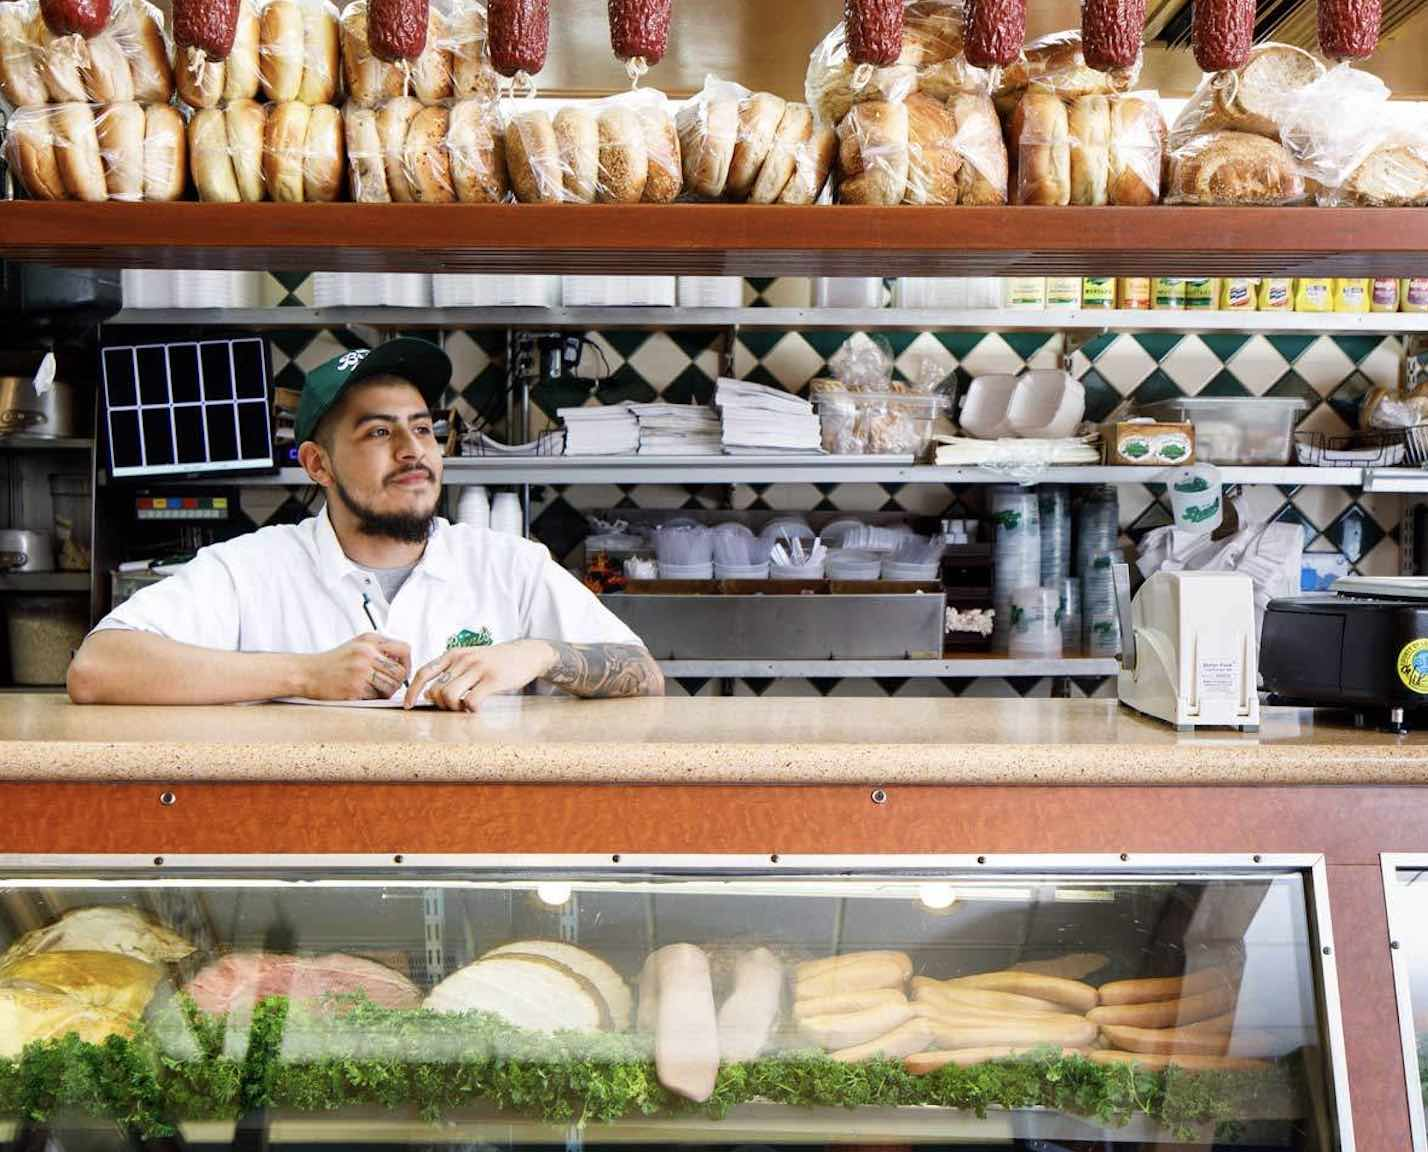 Brents Deli with server behind the counter